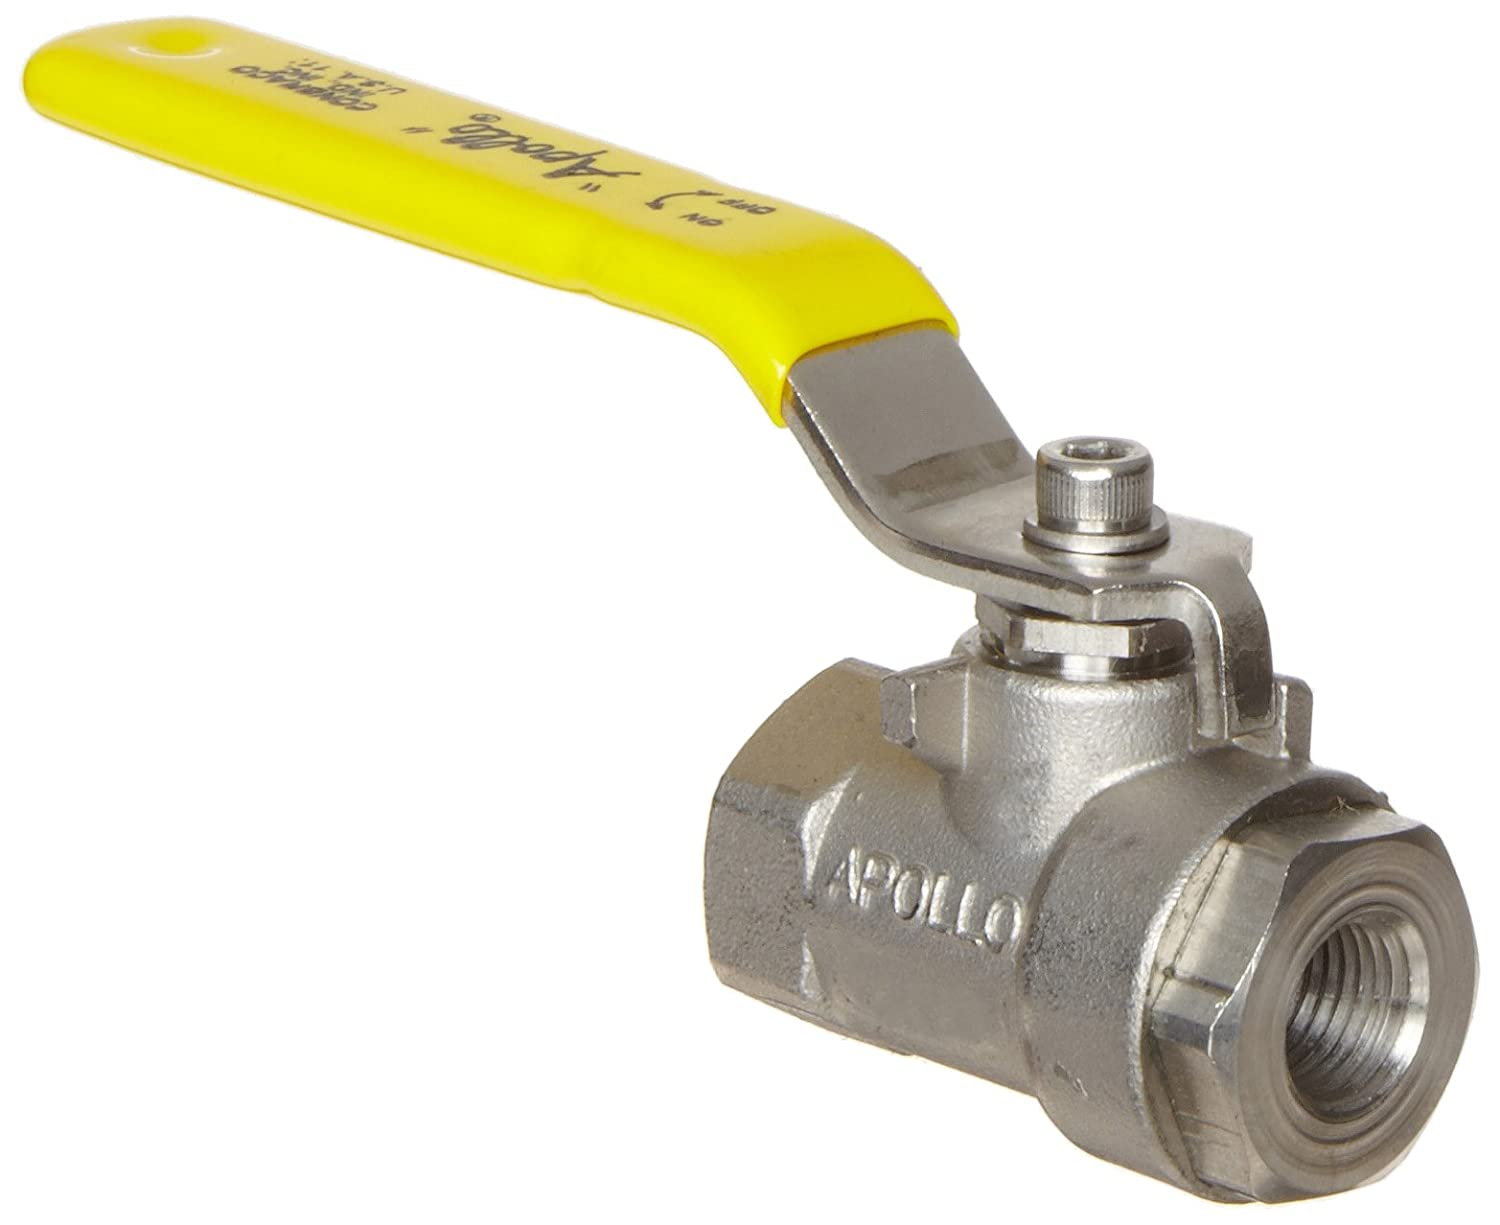 apollo 70 100 series bronze ball valve - HD 1500×1225